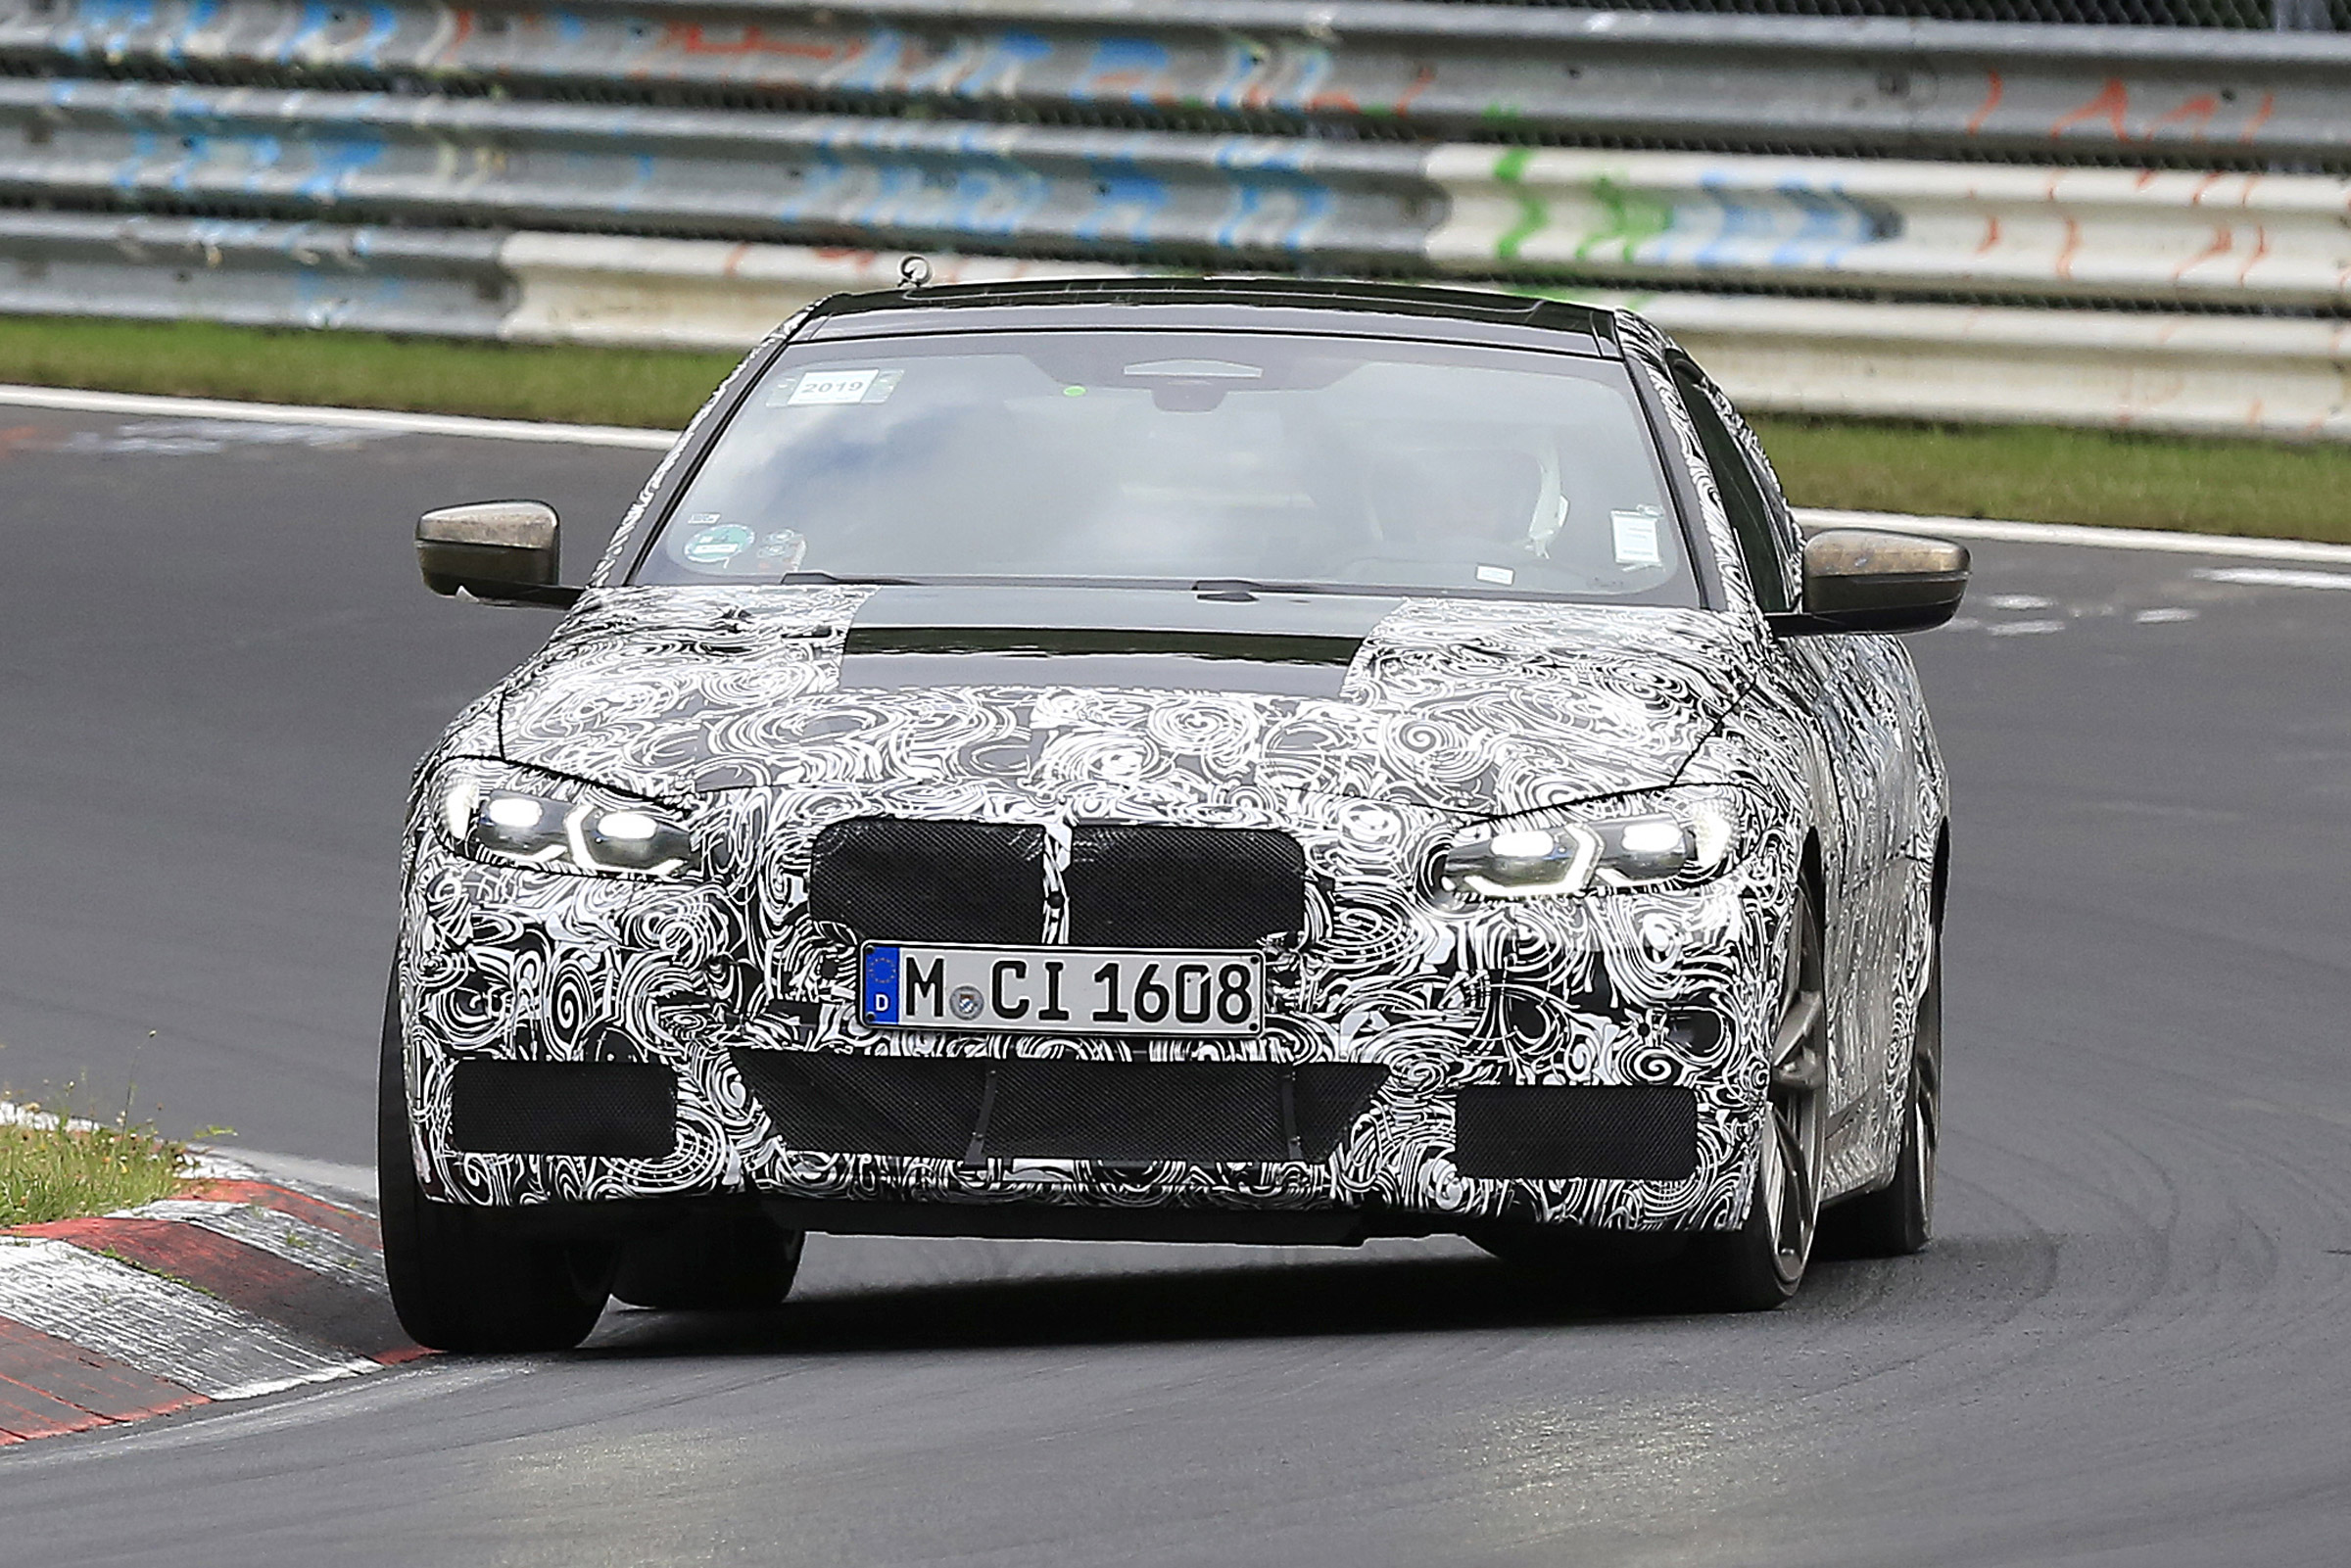 If these spy shots are any indication, BMW will be unveiling a new coupe-shaped concept car at the upcoming International Motor Show Germany in Frankfurt on September 12-22, 2019.